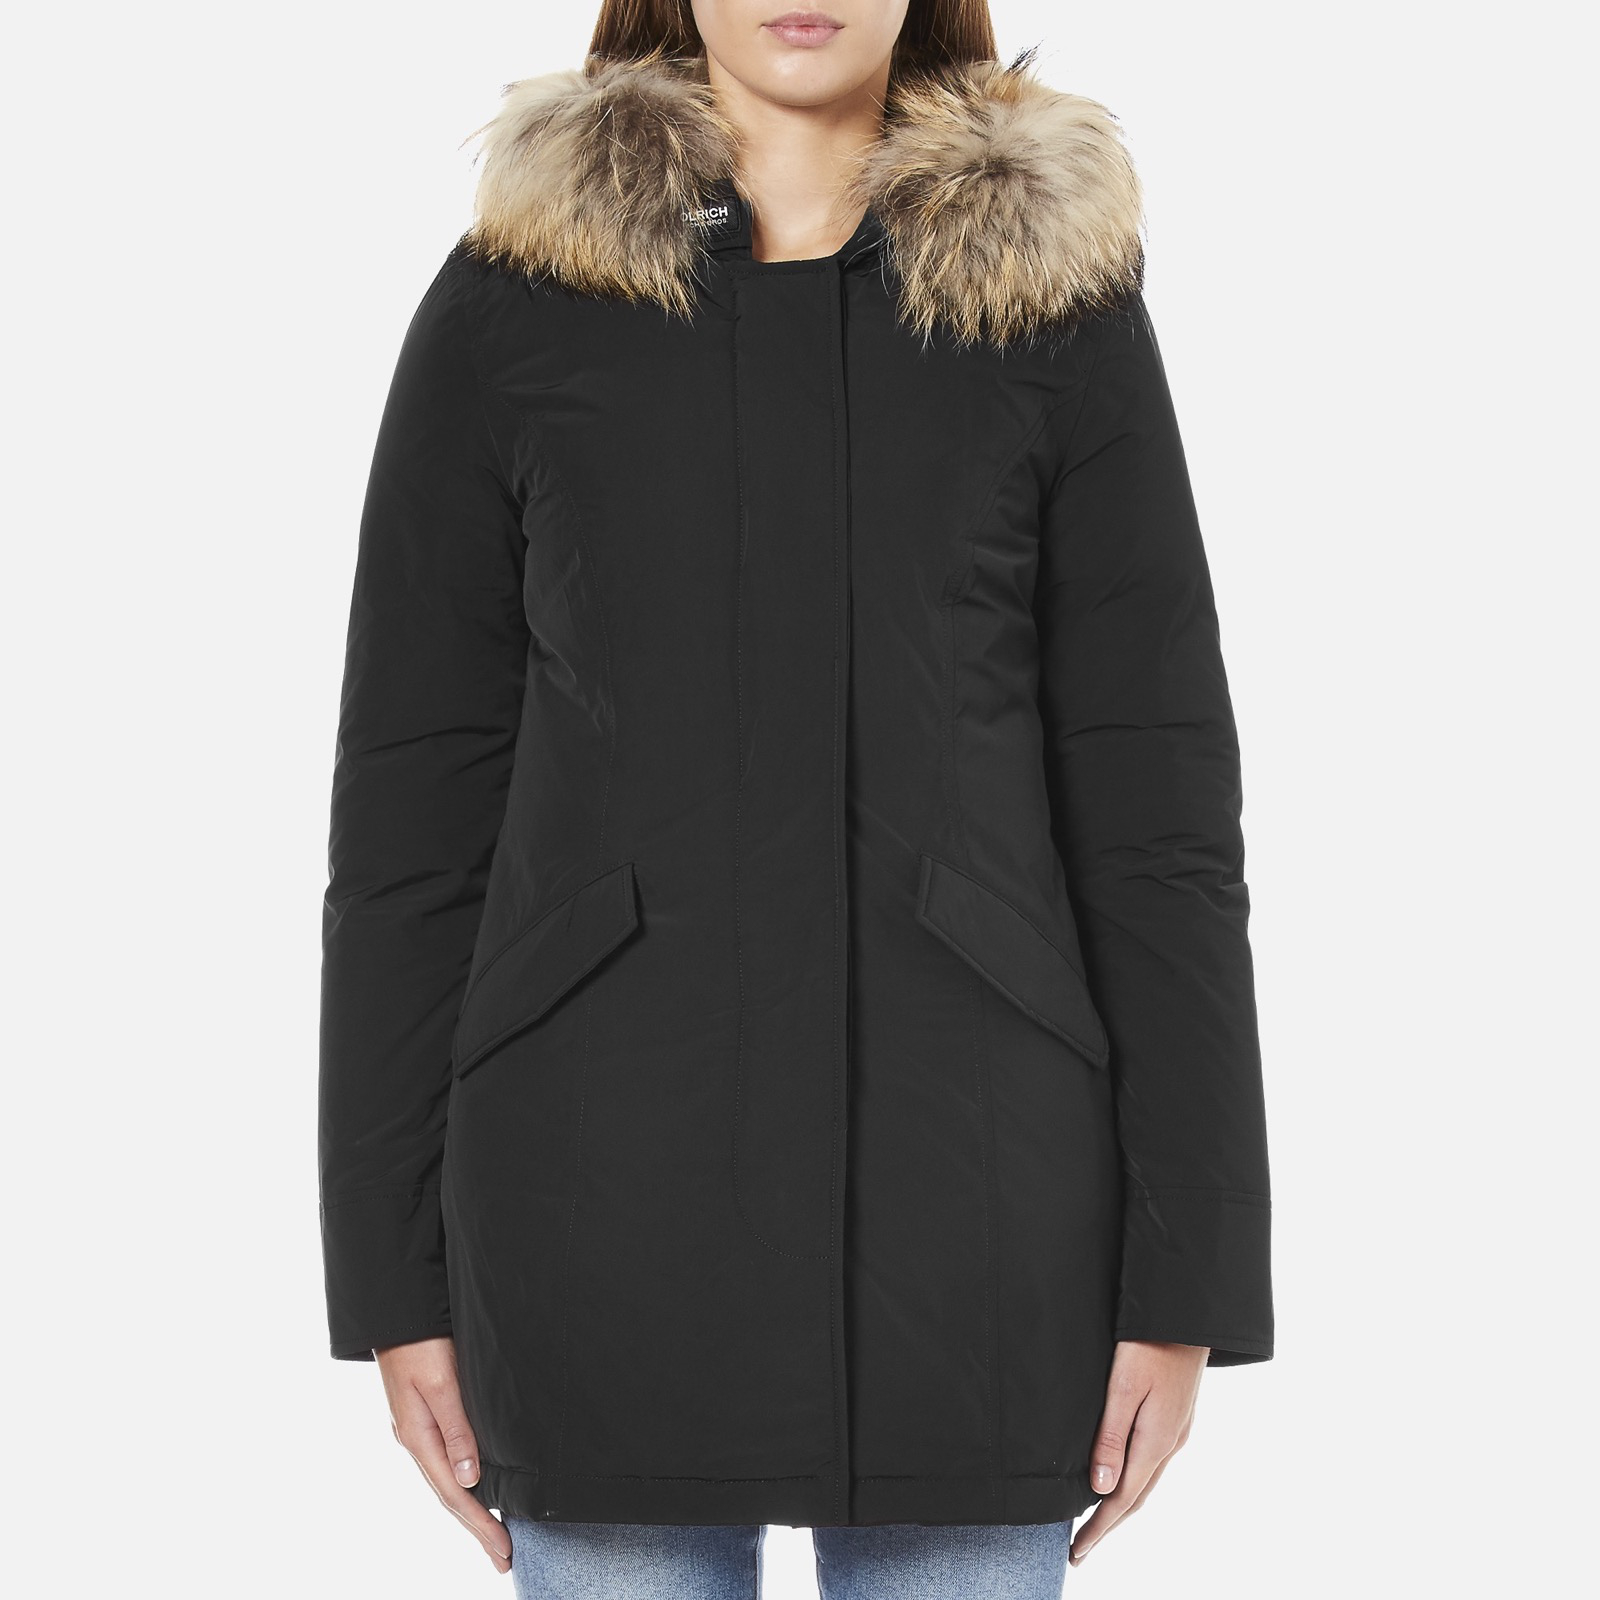 b71e1072889a1a Woolrich Women's Luxury Arctic Parka - Black - Free UK Delivery over £50